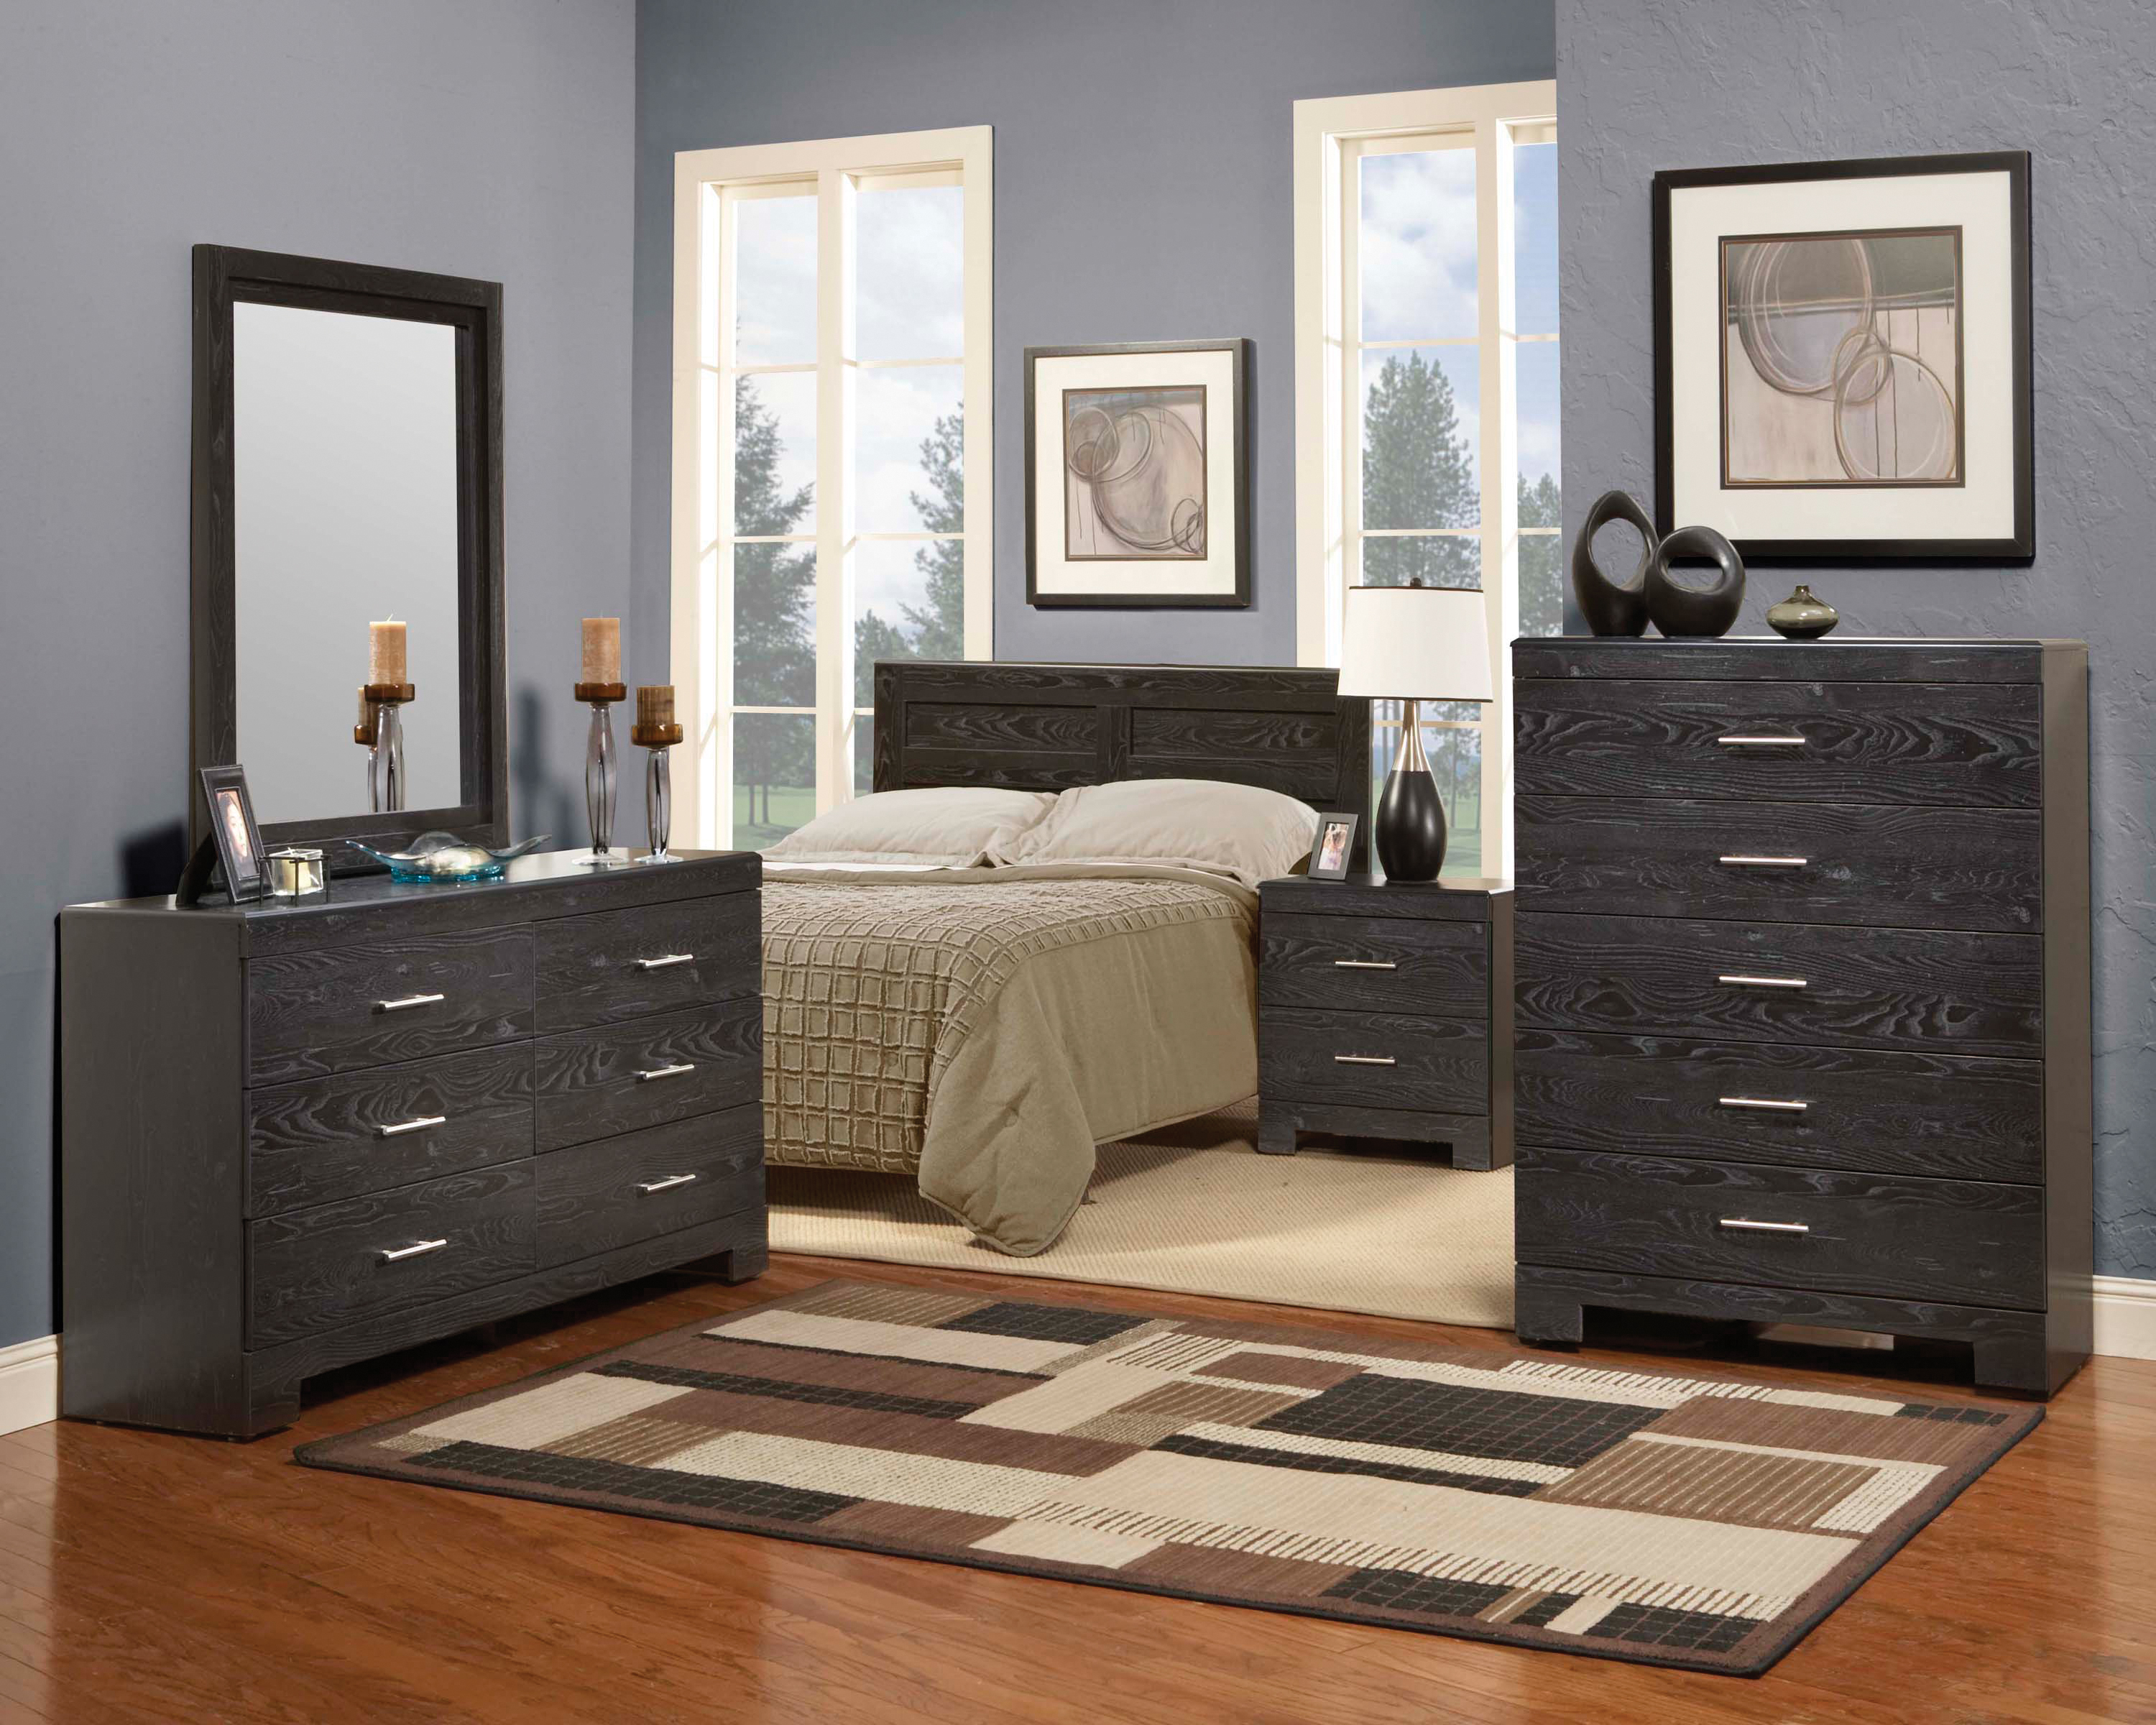 bedroom manhattan colony furniture leasing